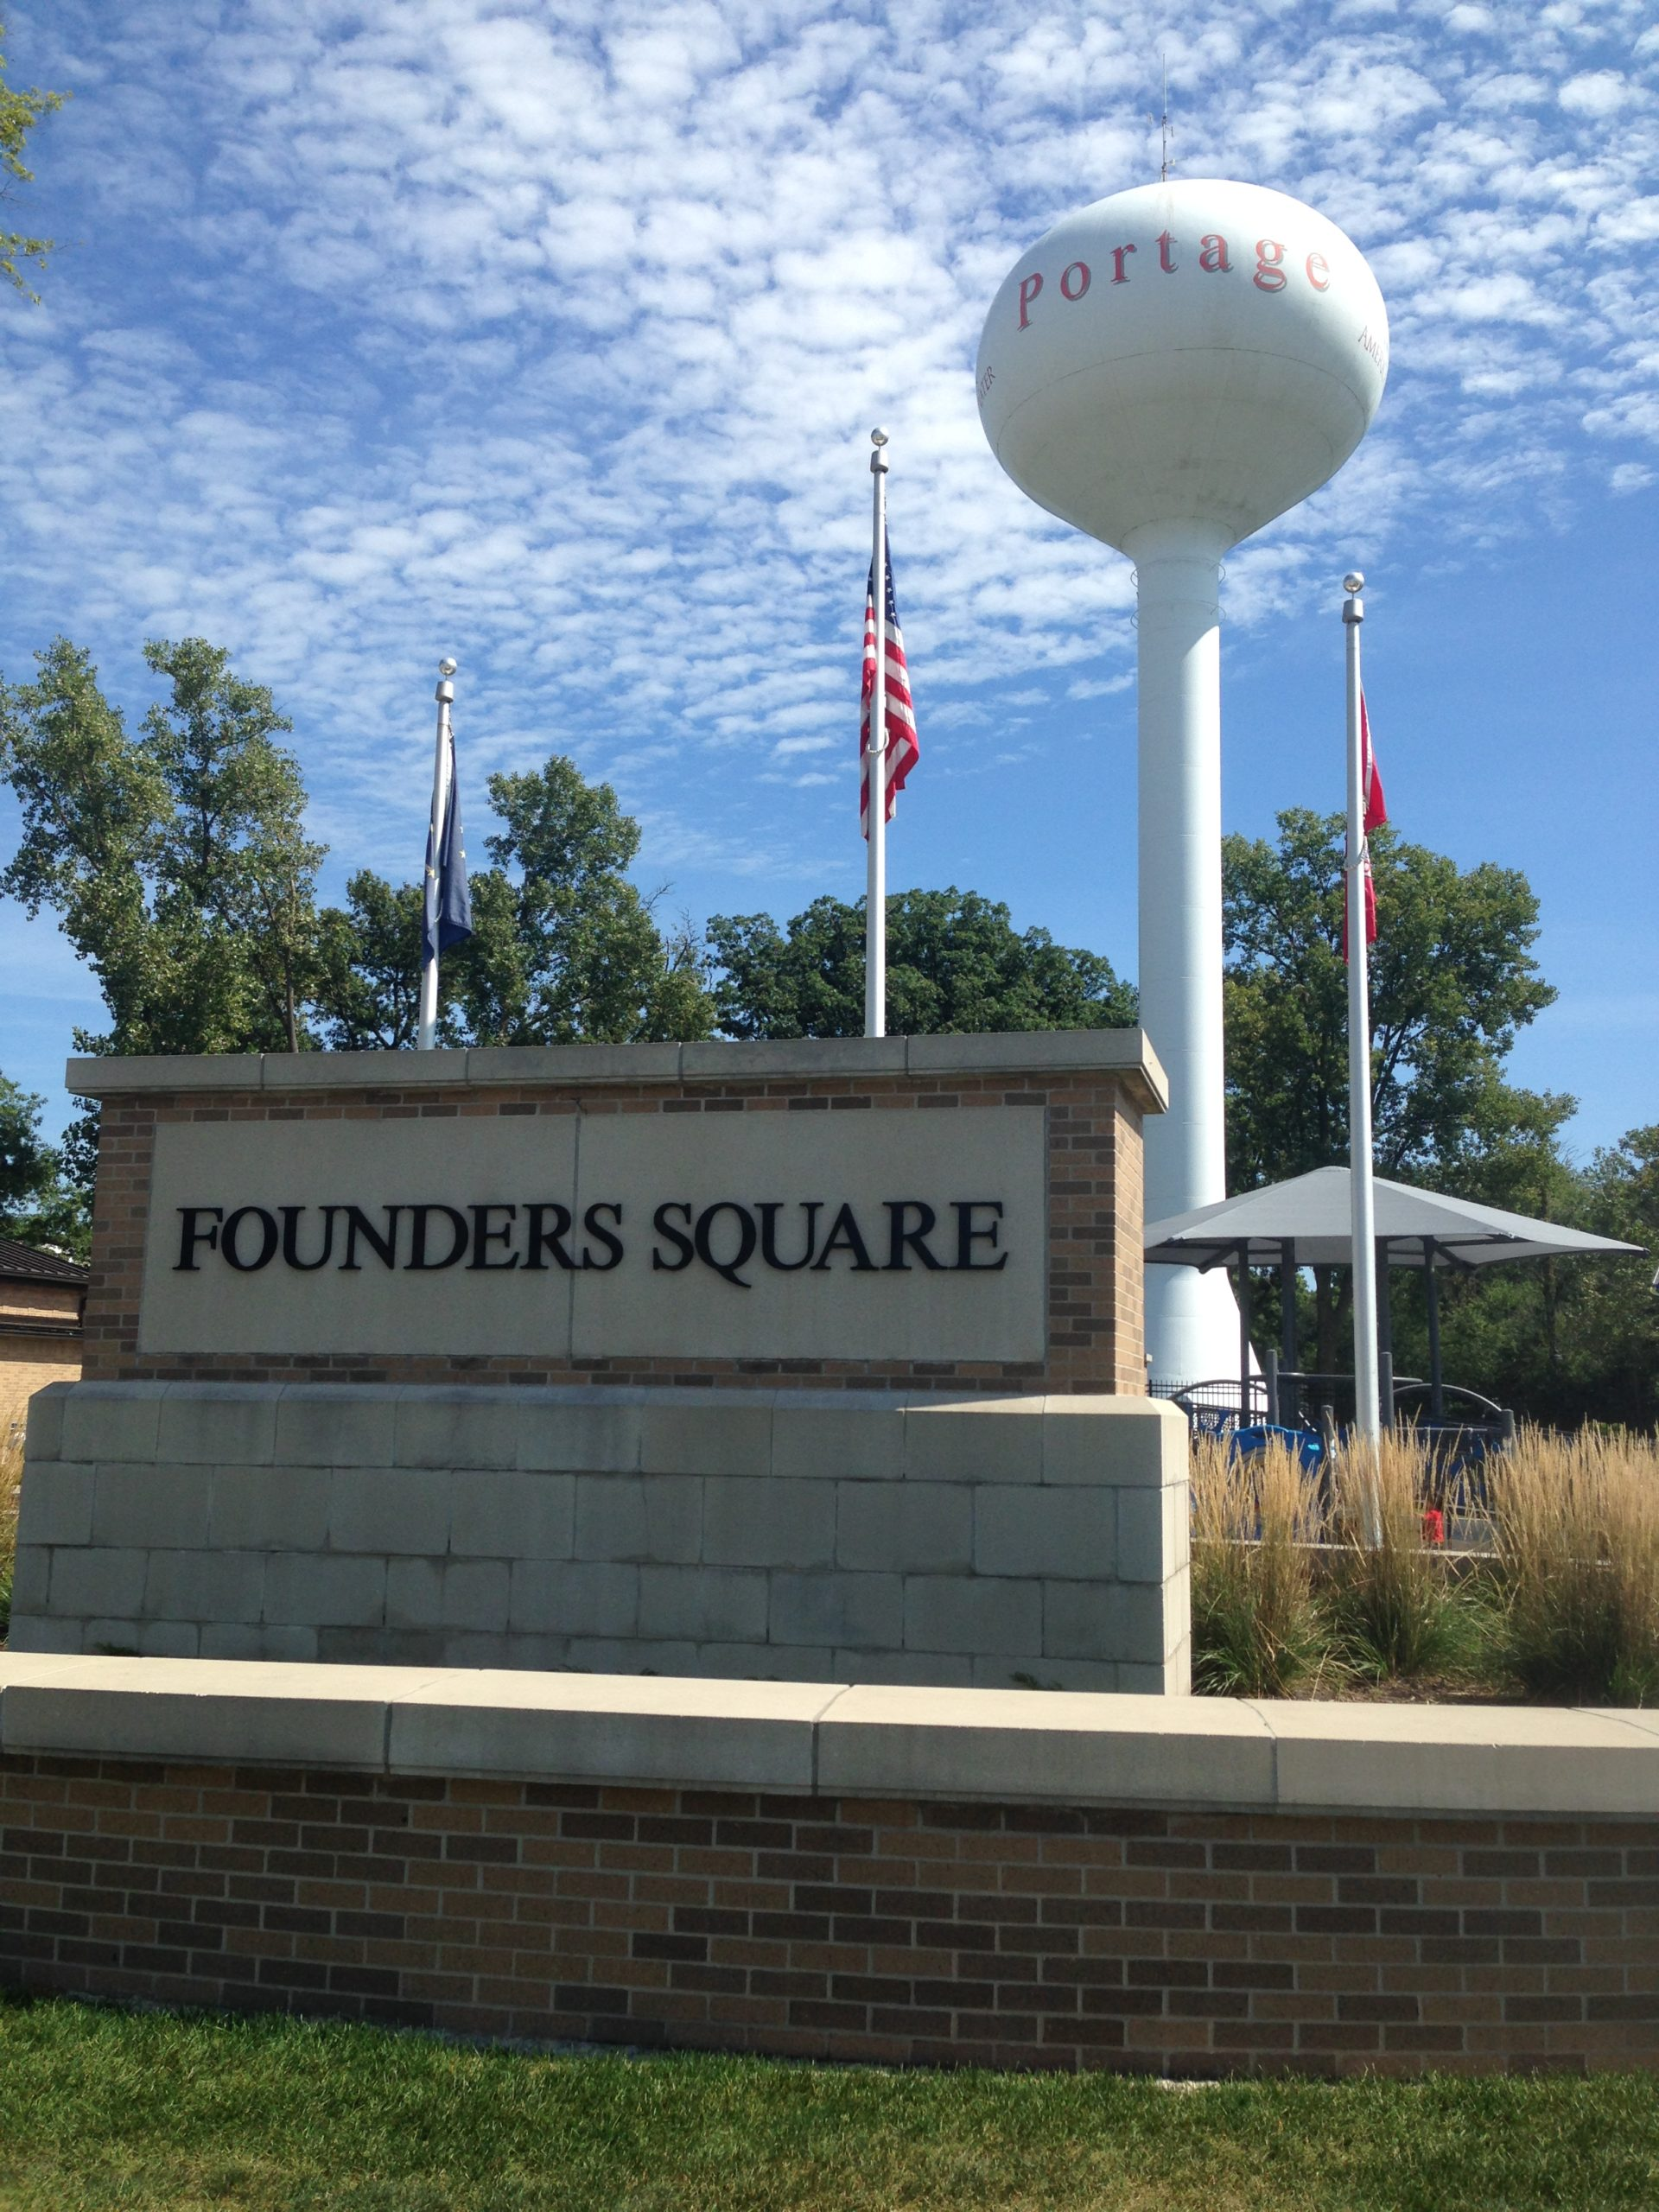 founders square portage indiana scaled